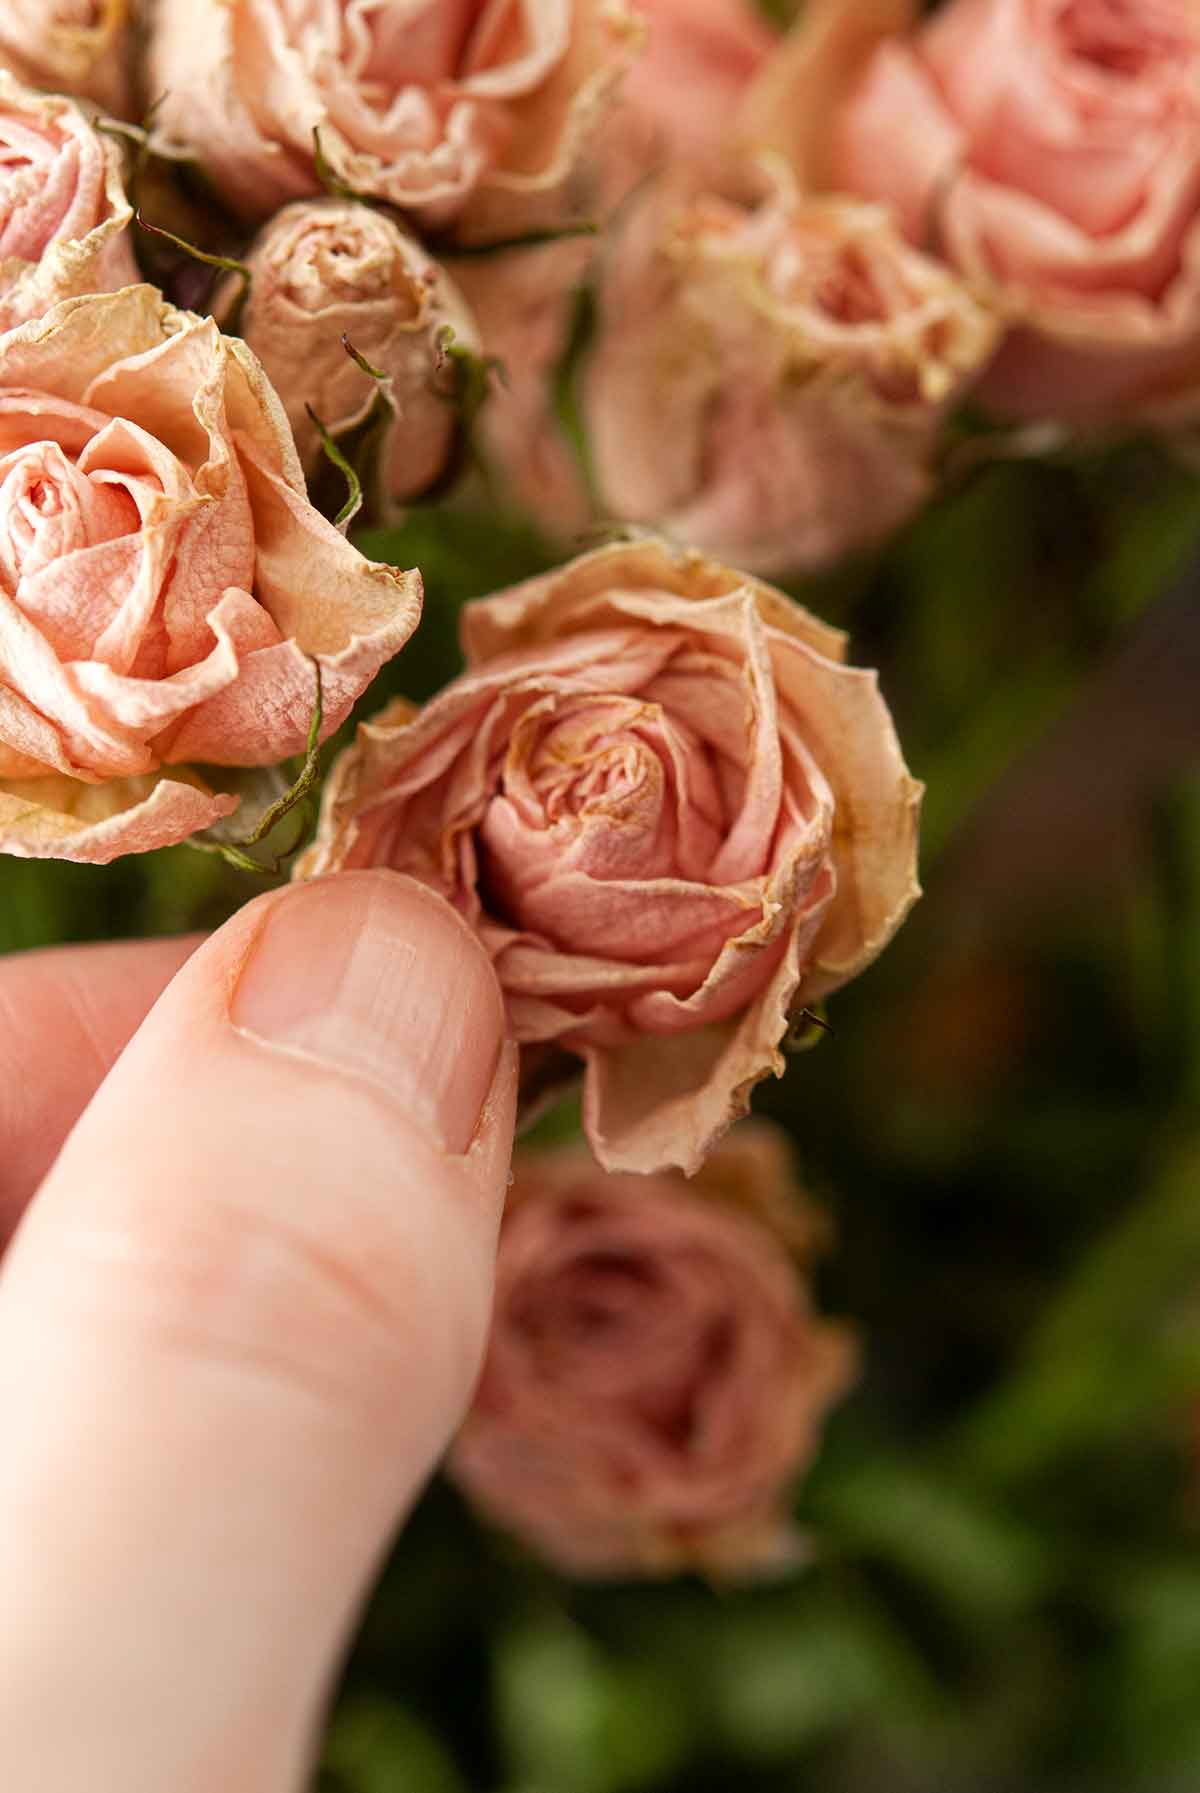 Fingers opening the petals of a spray rose.